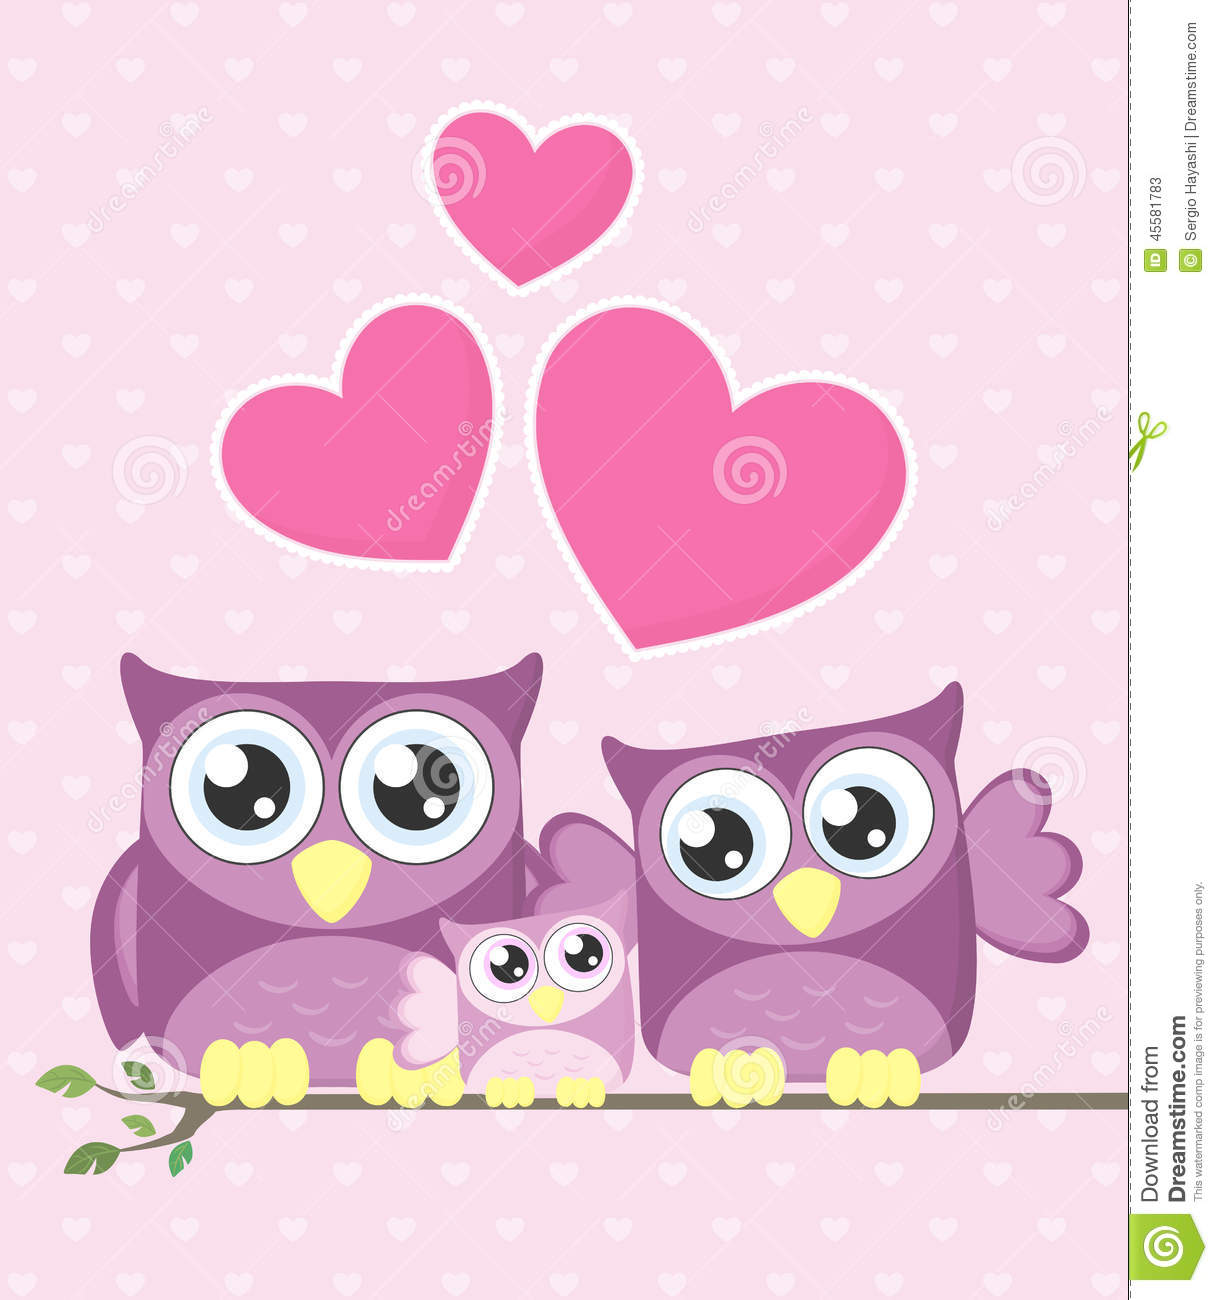 Cute Baby Girl Swing Hd Wallpaper Cute Owls Family Stock Vector Image Of Clipart Branch